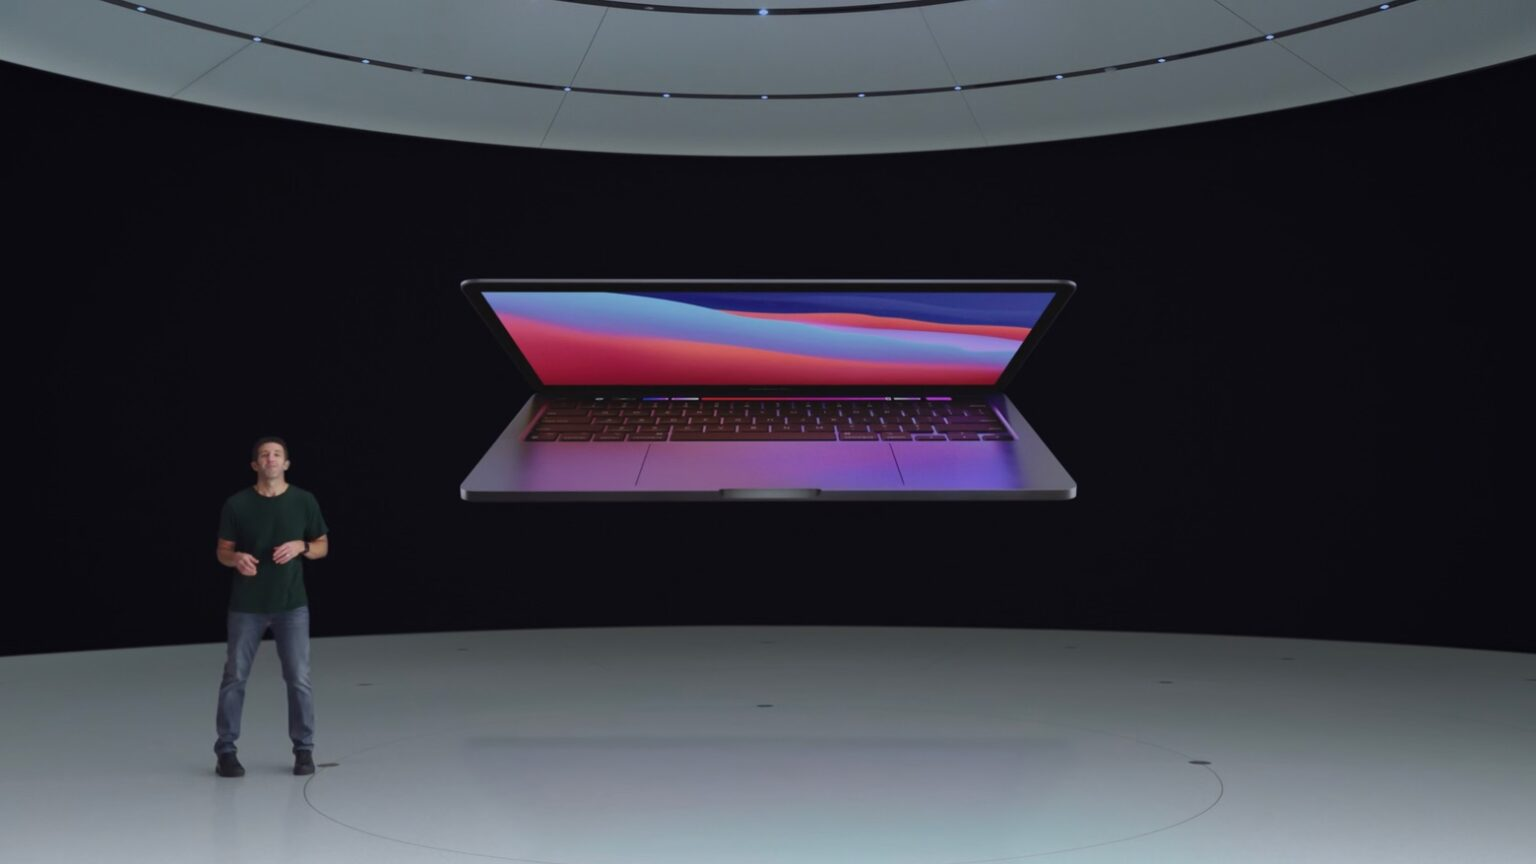 13-inch MacBook Pro with M1 boasts amazing speed and battery life.